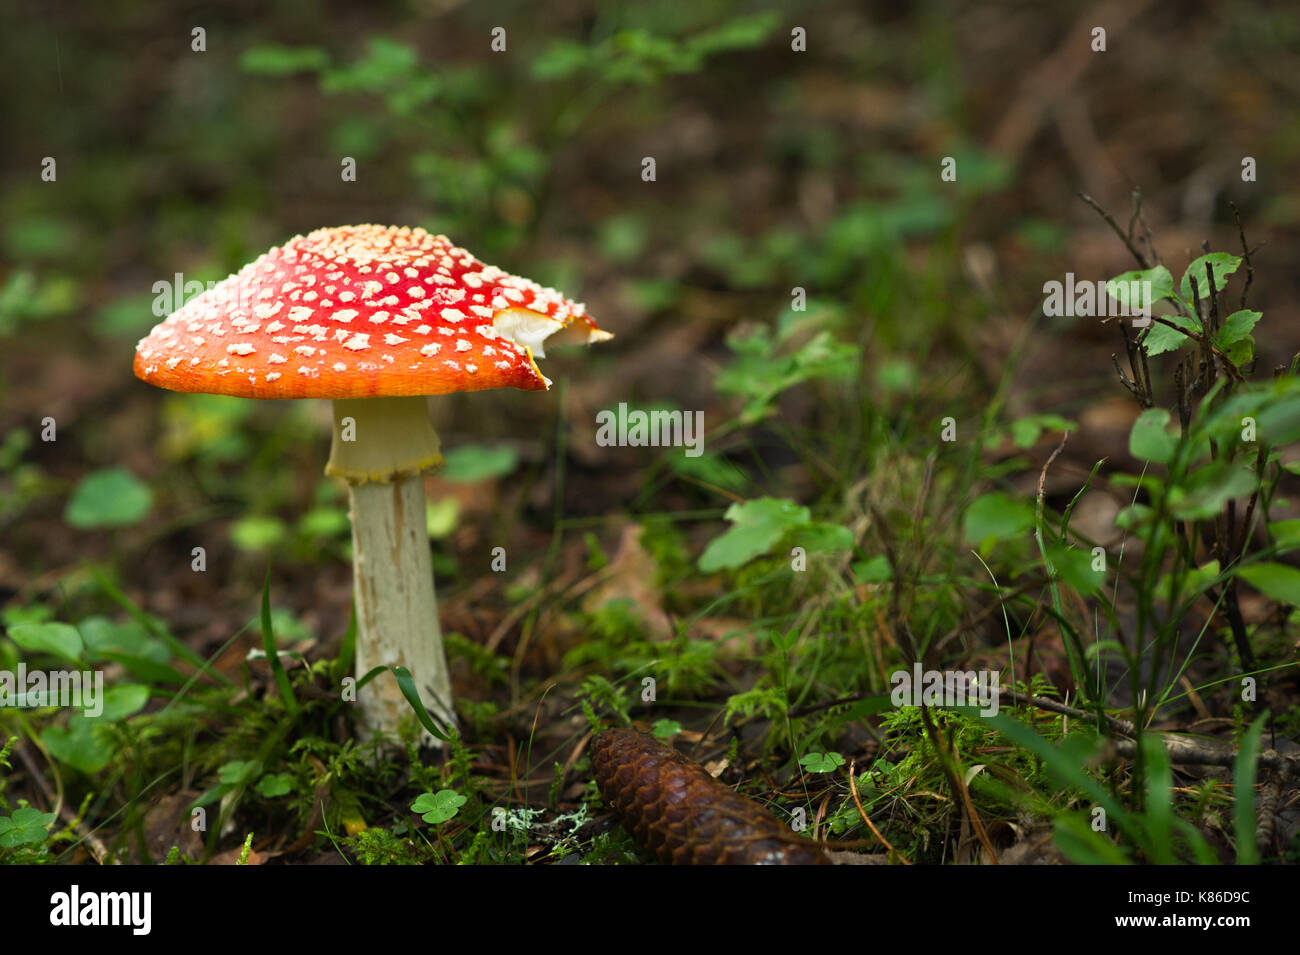 Mushroom in Swedish forest. - Stock Image